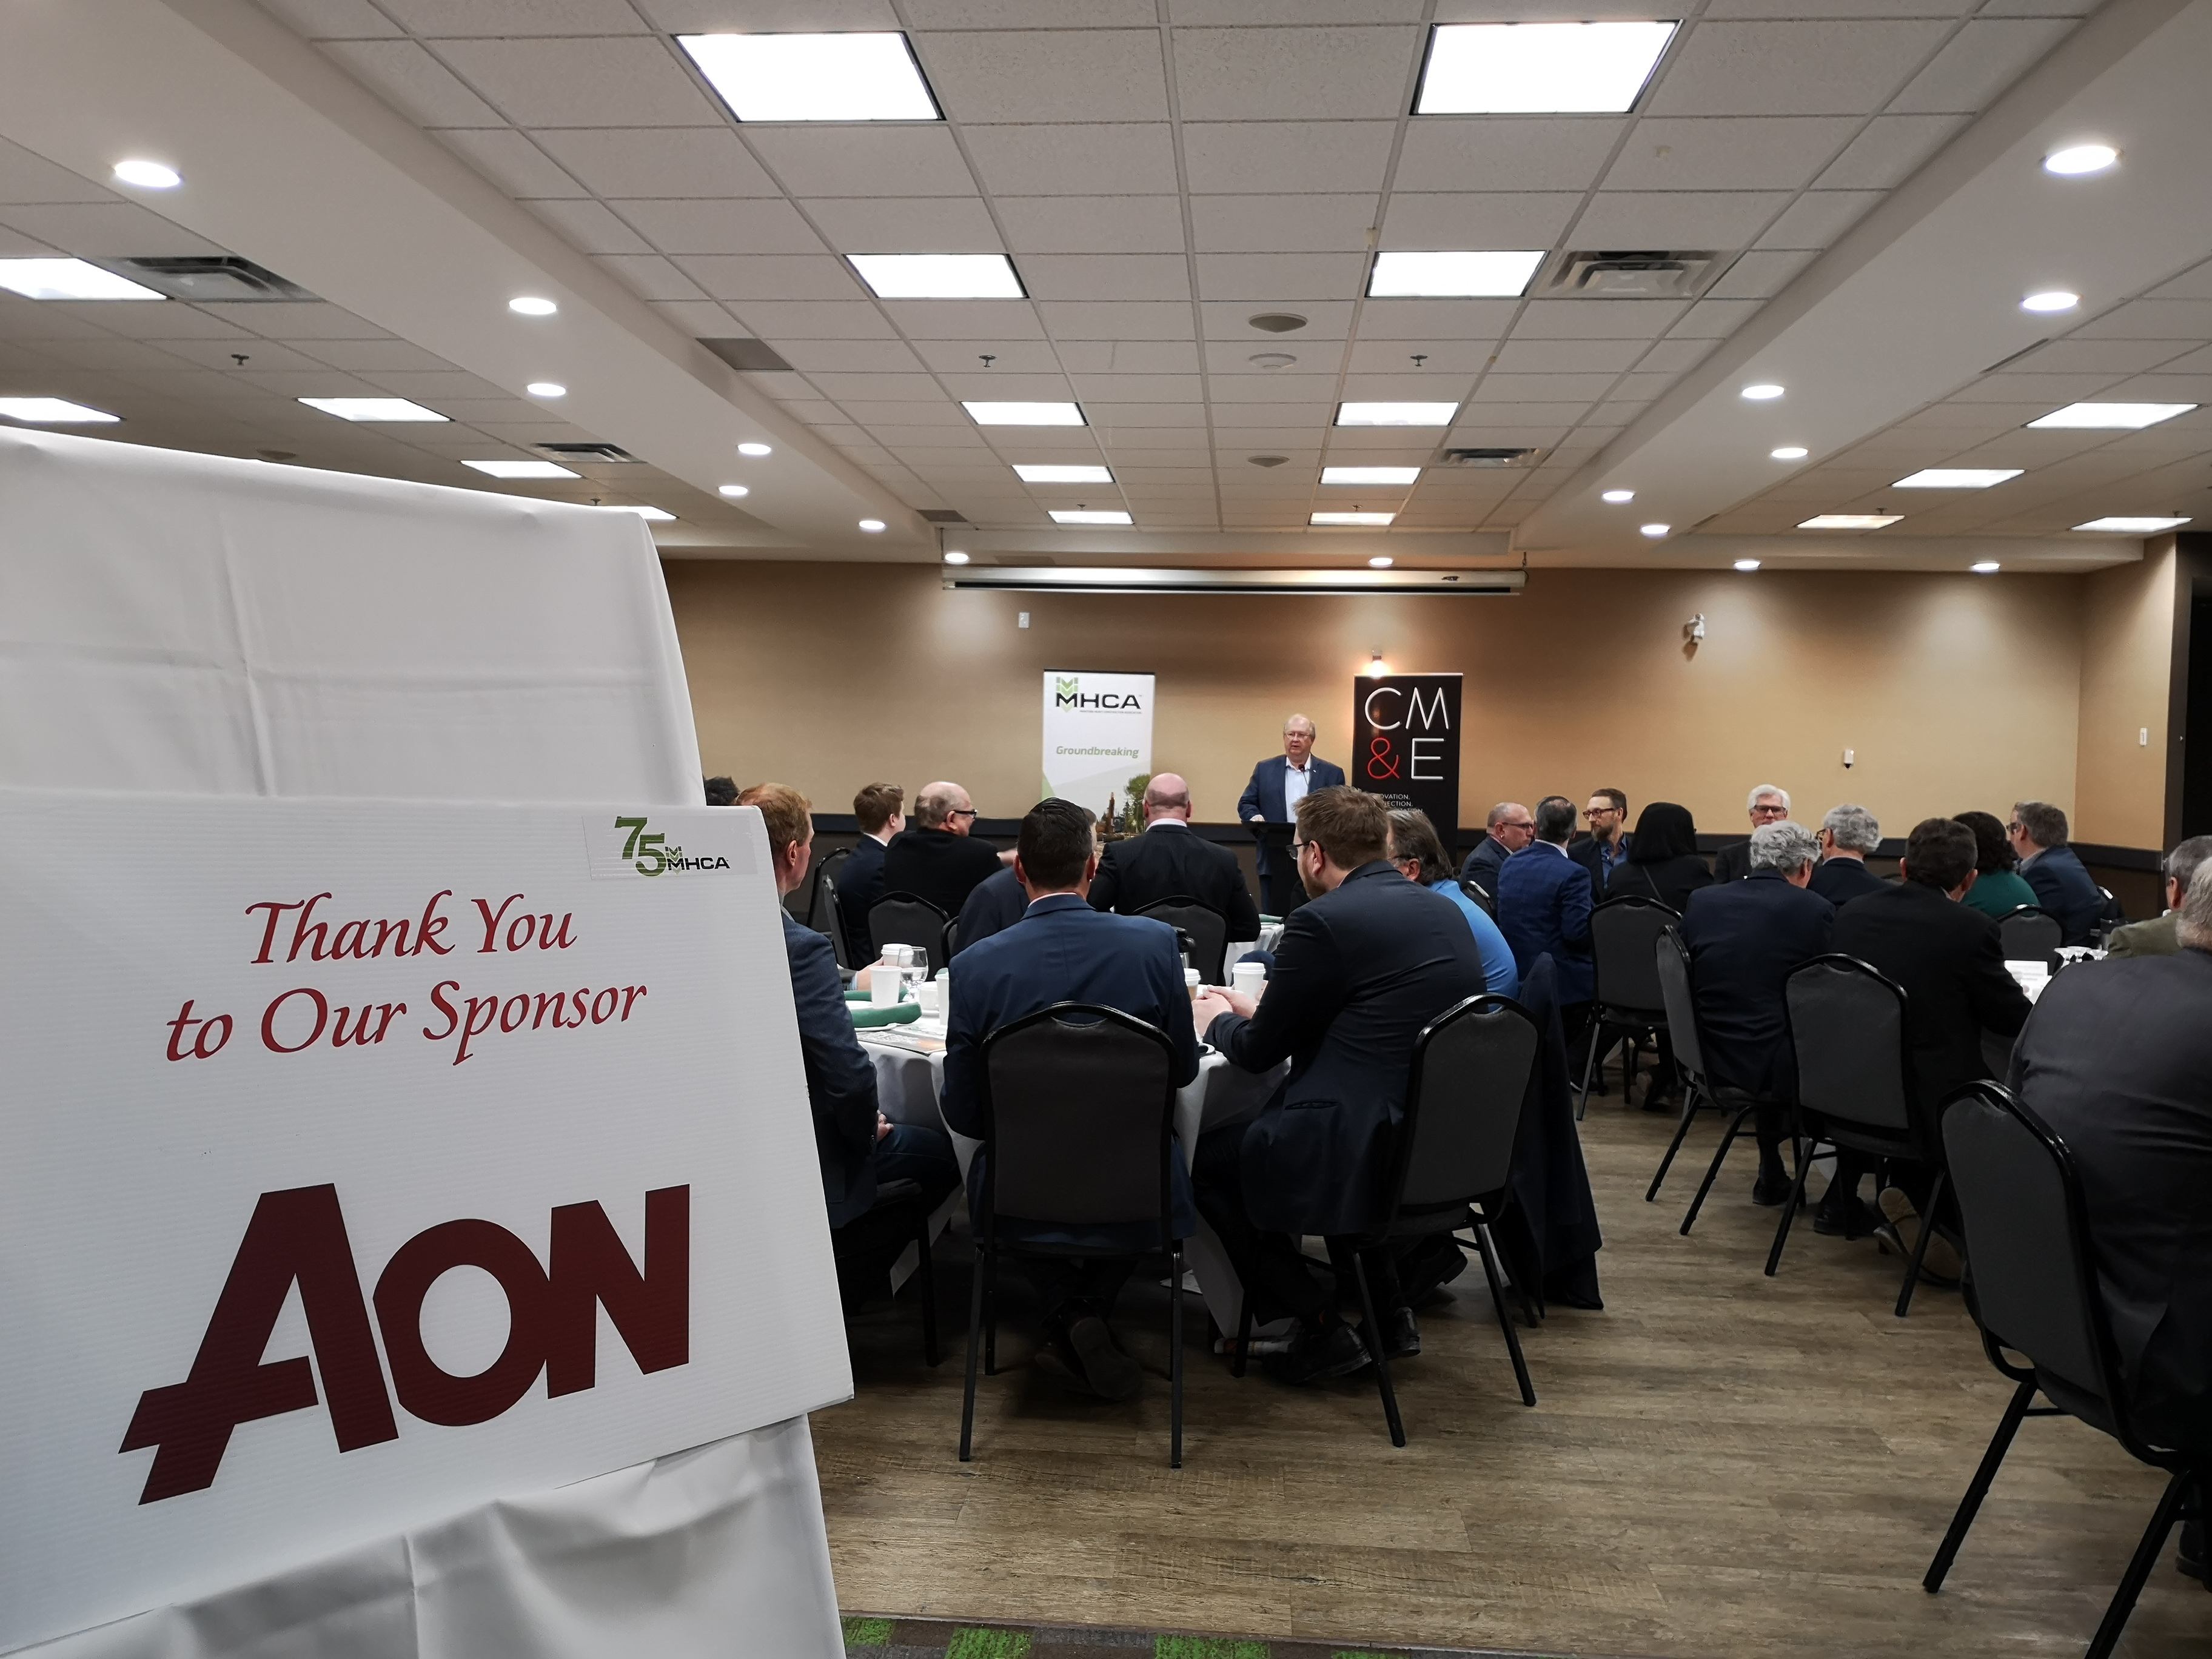 Breakfast with Leaders Series sponsored by AON